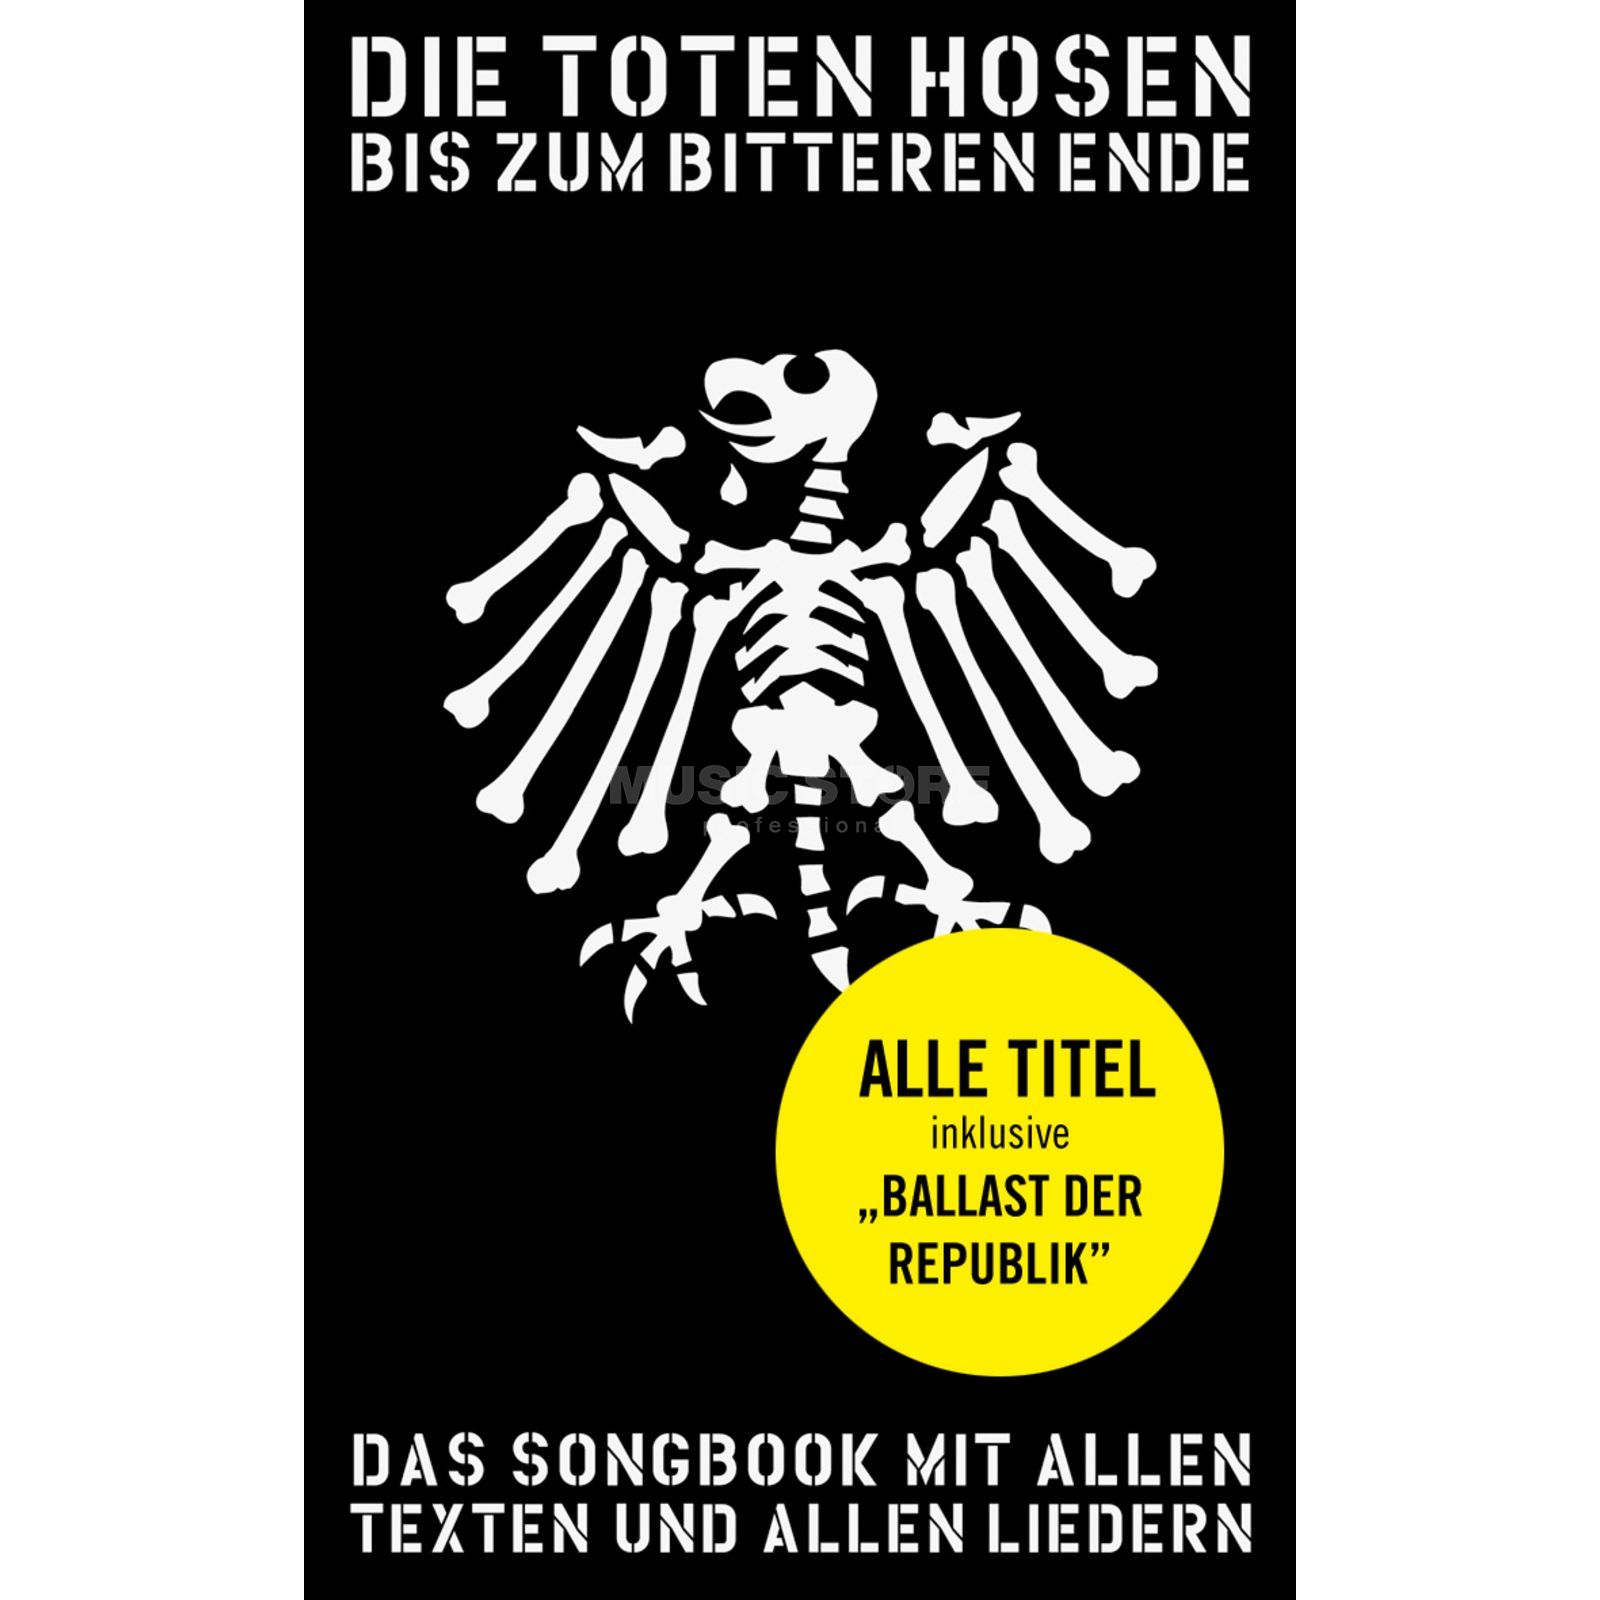 Bosworth Music Little Black Book Toten Hosen Lyrics, Chords Produktbild